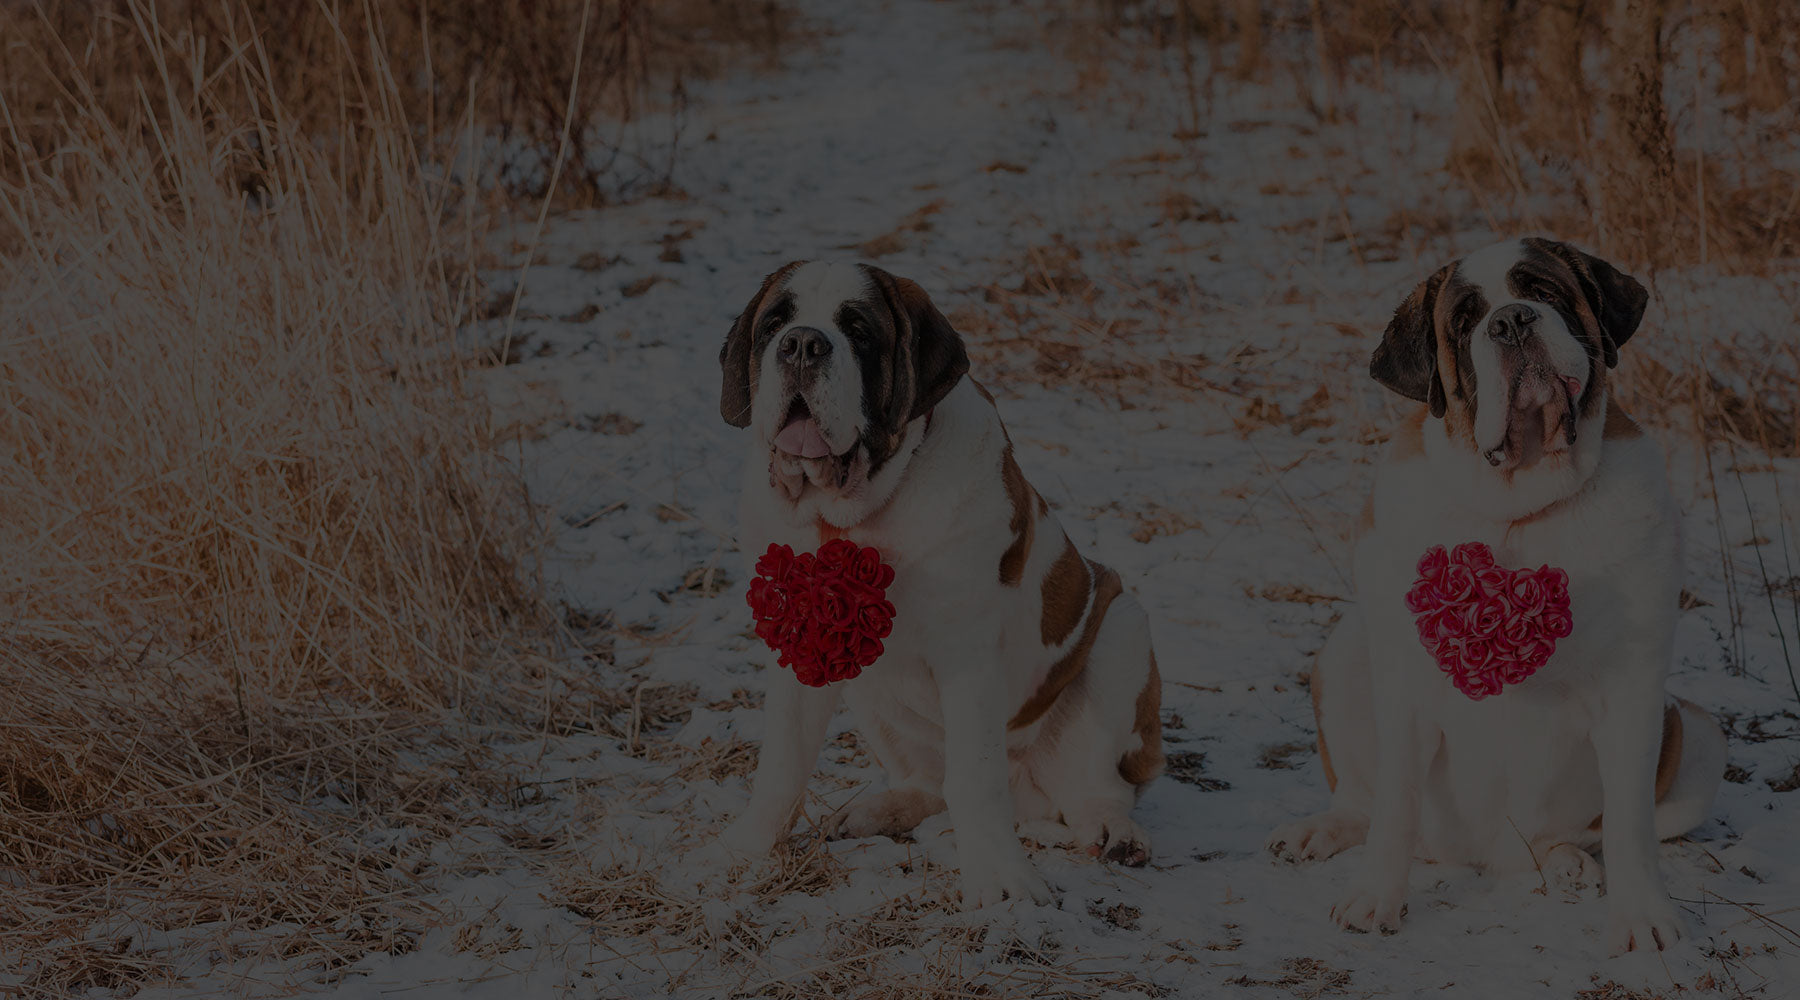 About Saint Bernards Lucy and Norman